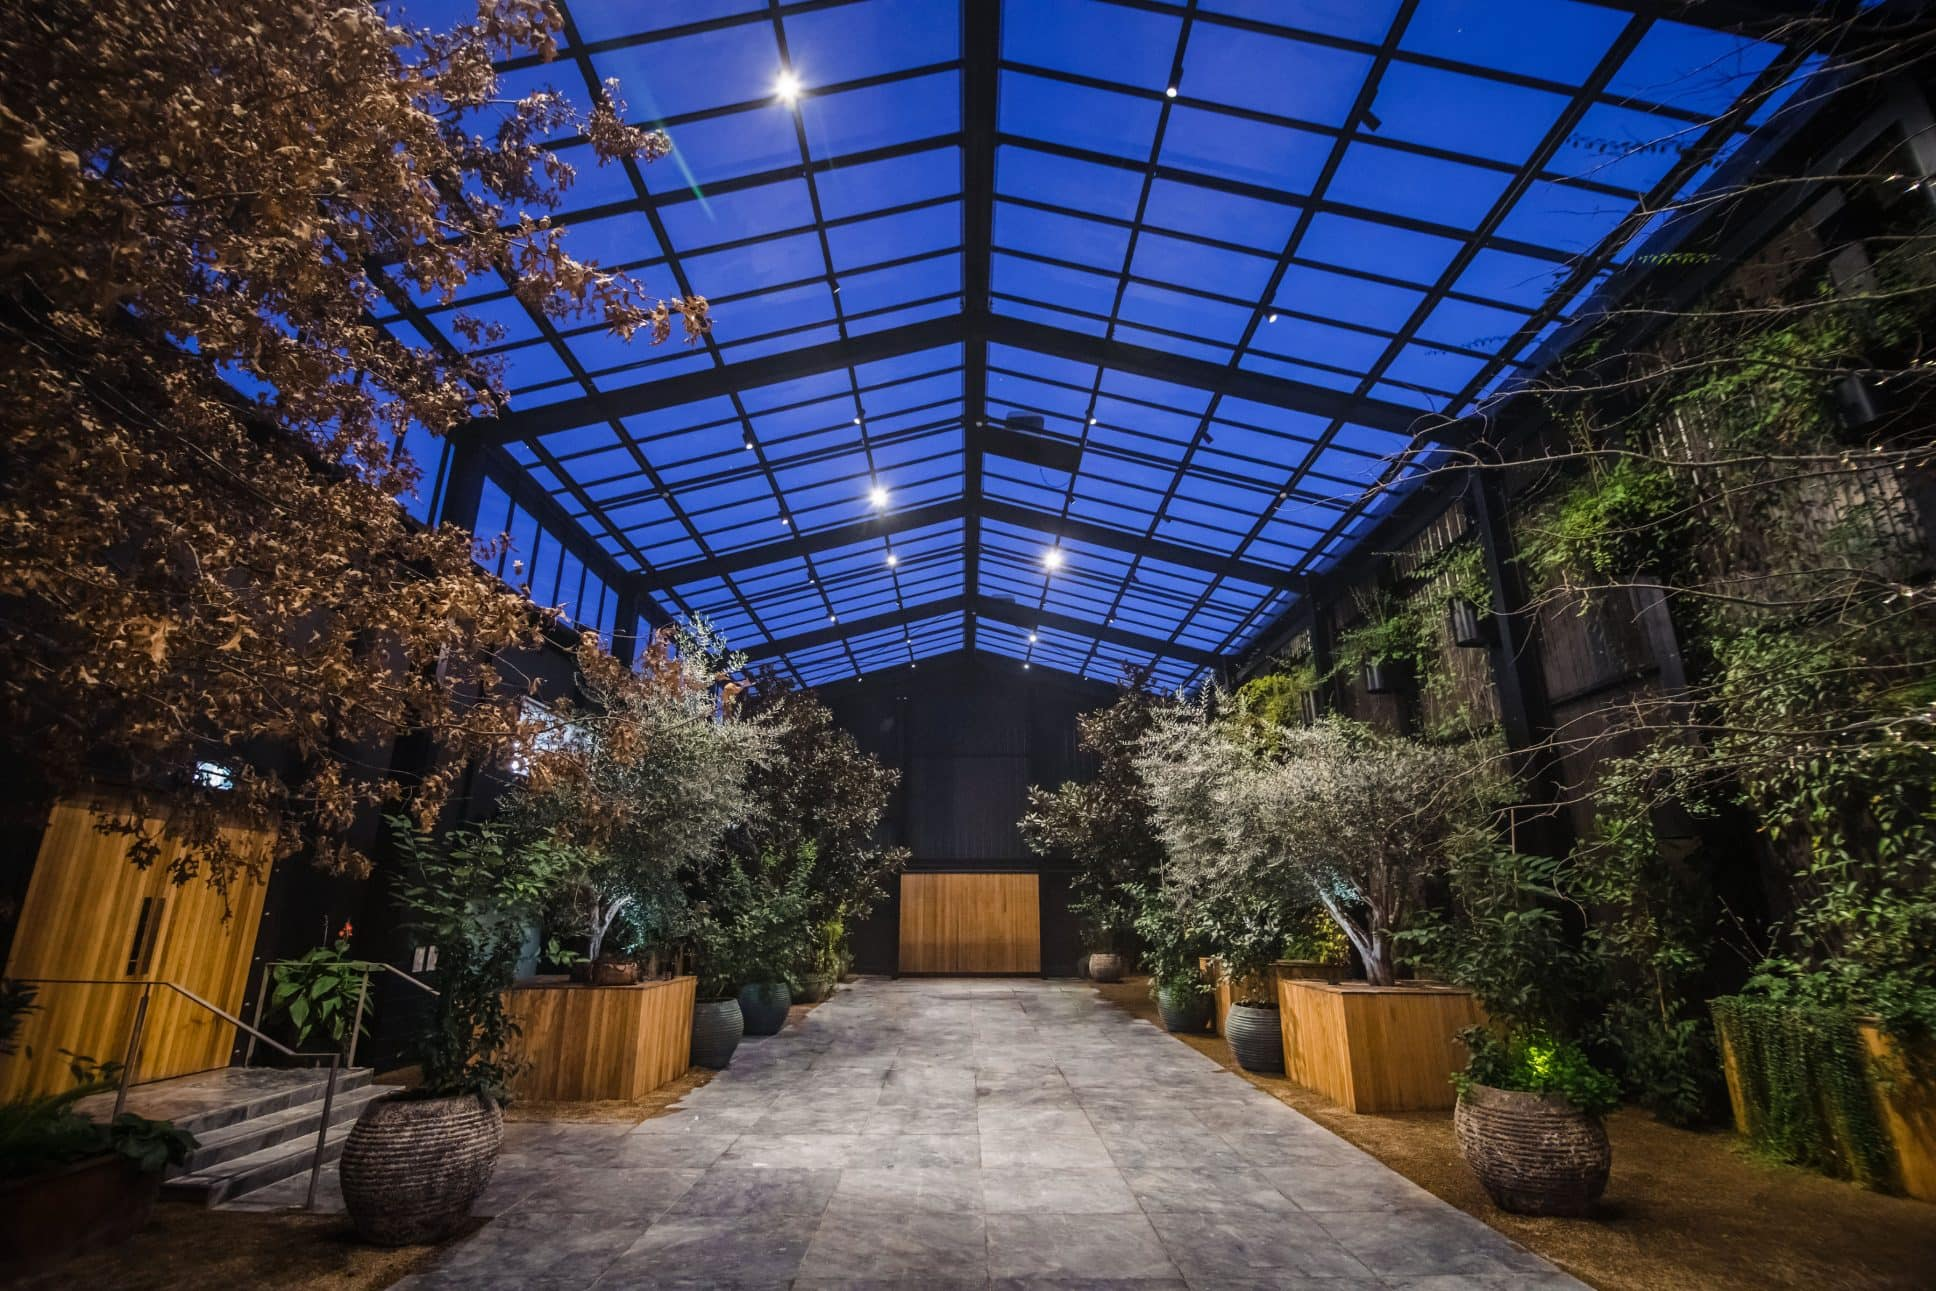 Event space in auckland called The Glasshouse